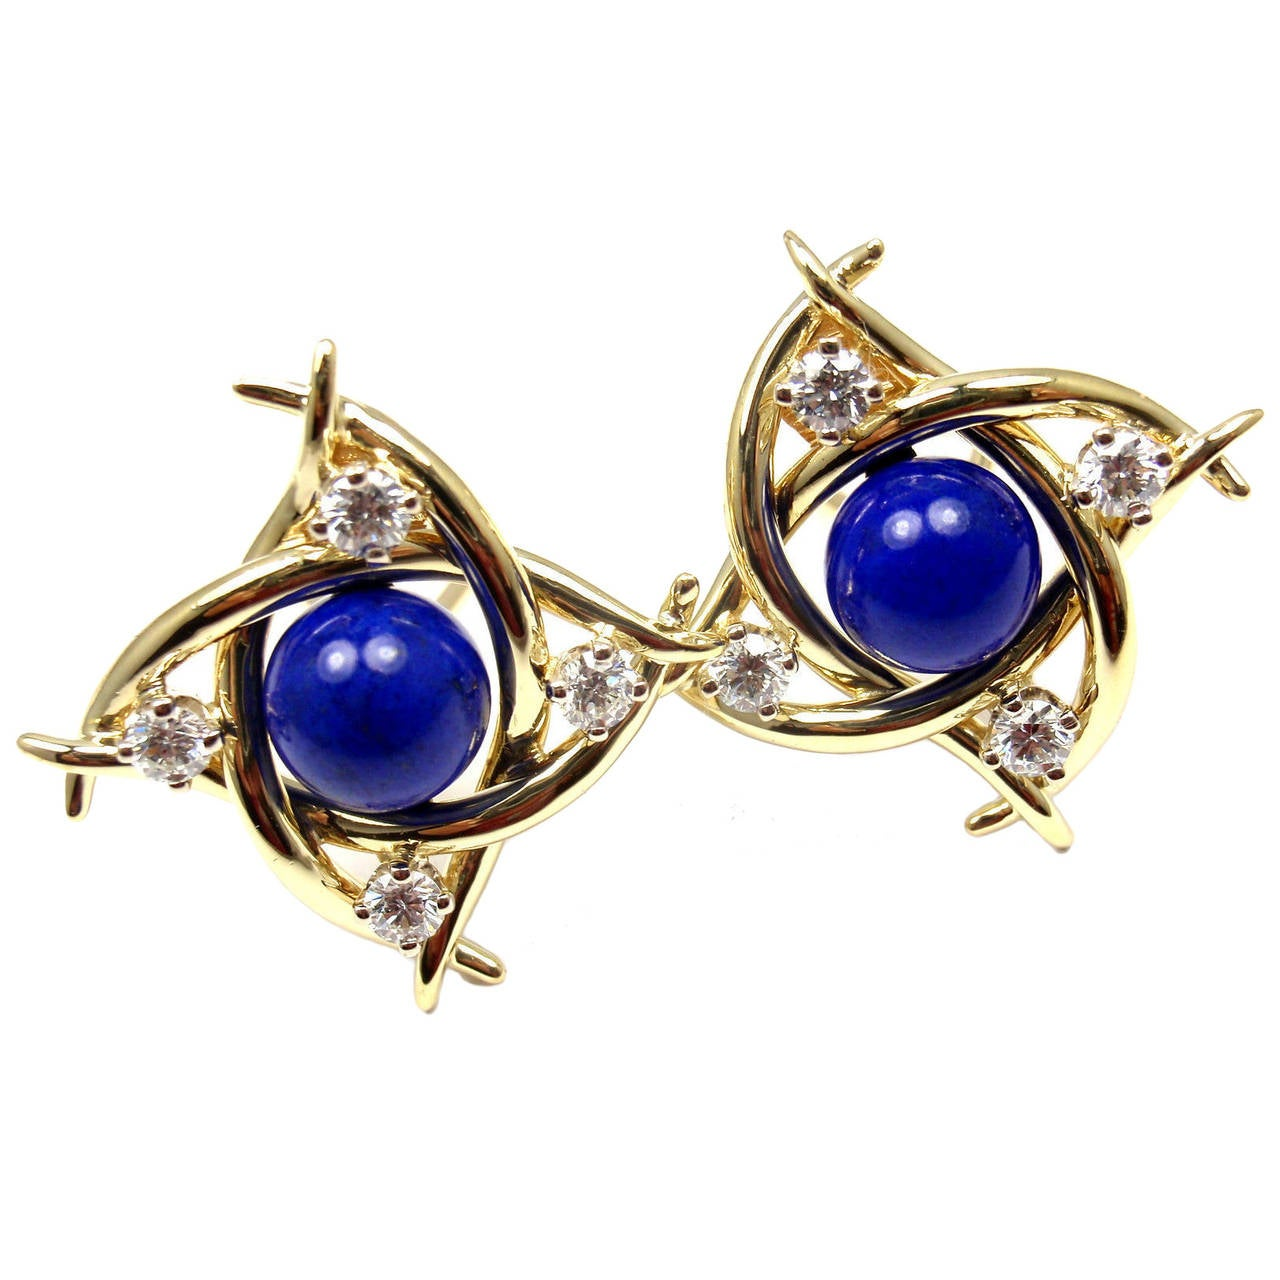 Tiffany & Co. Lapis Lazuli Diamond Gold Earrings